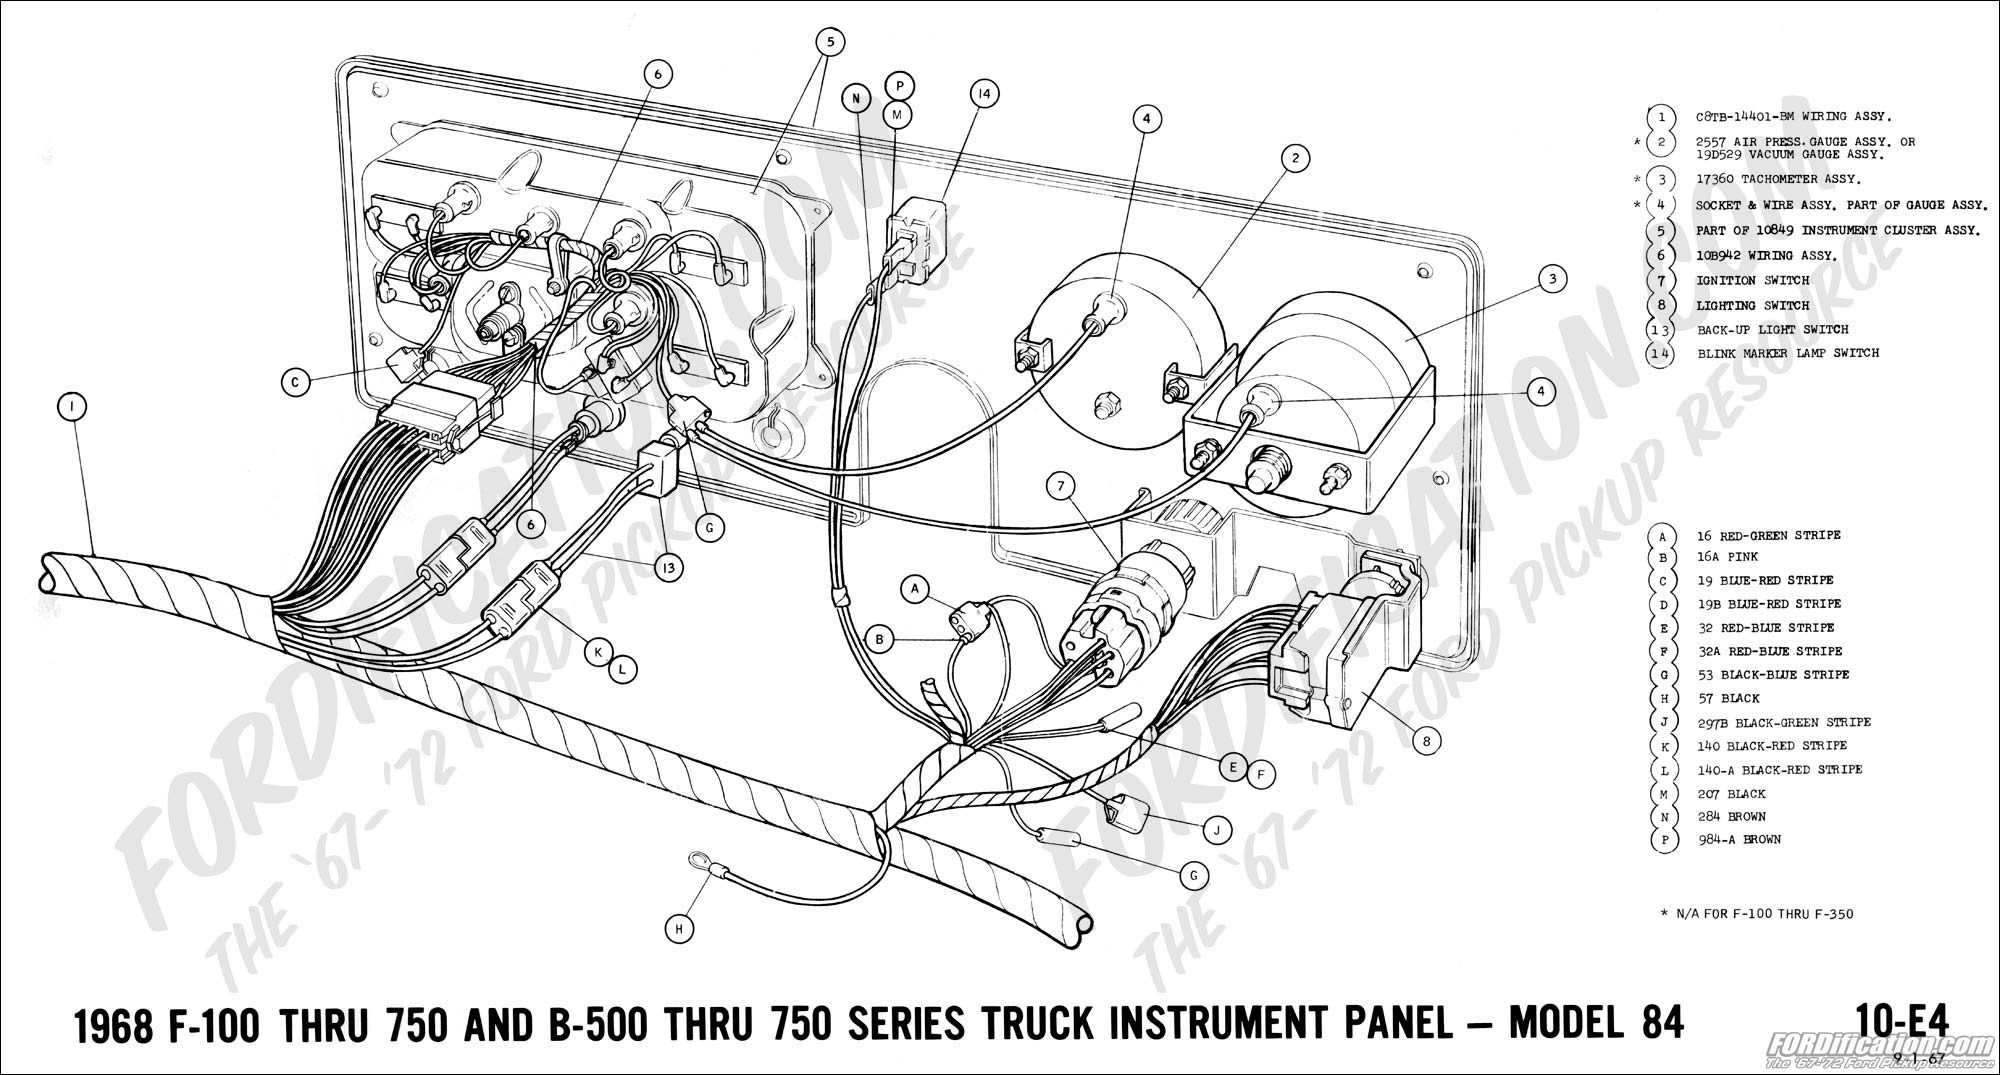 1977 C10 Fuel Diagram Opinions About Wiring 1987 Winnebago Chieftain Ford Truck Technical Drawings And Schematics Section H Diagrams Short Bed